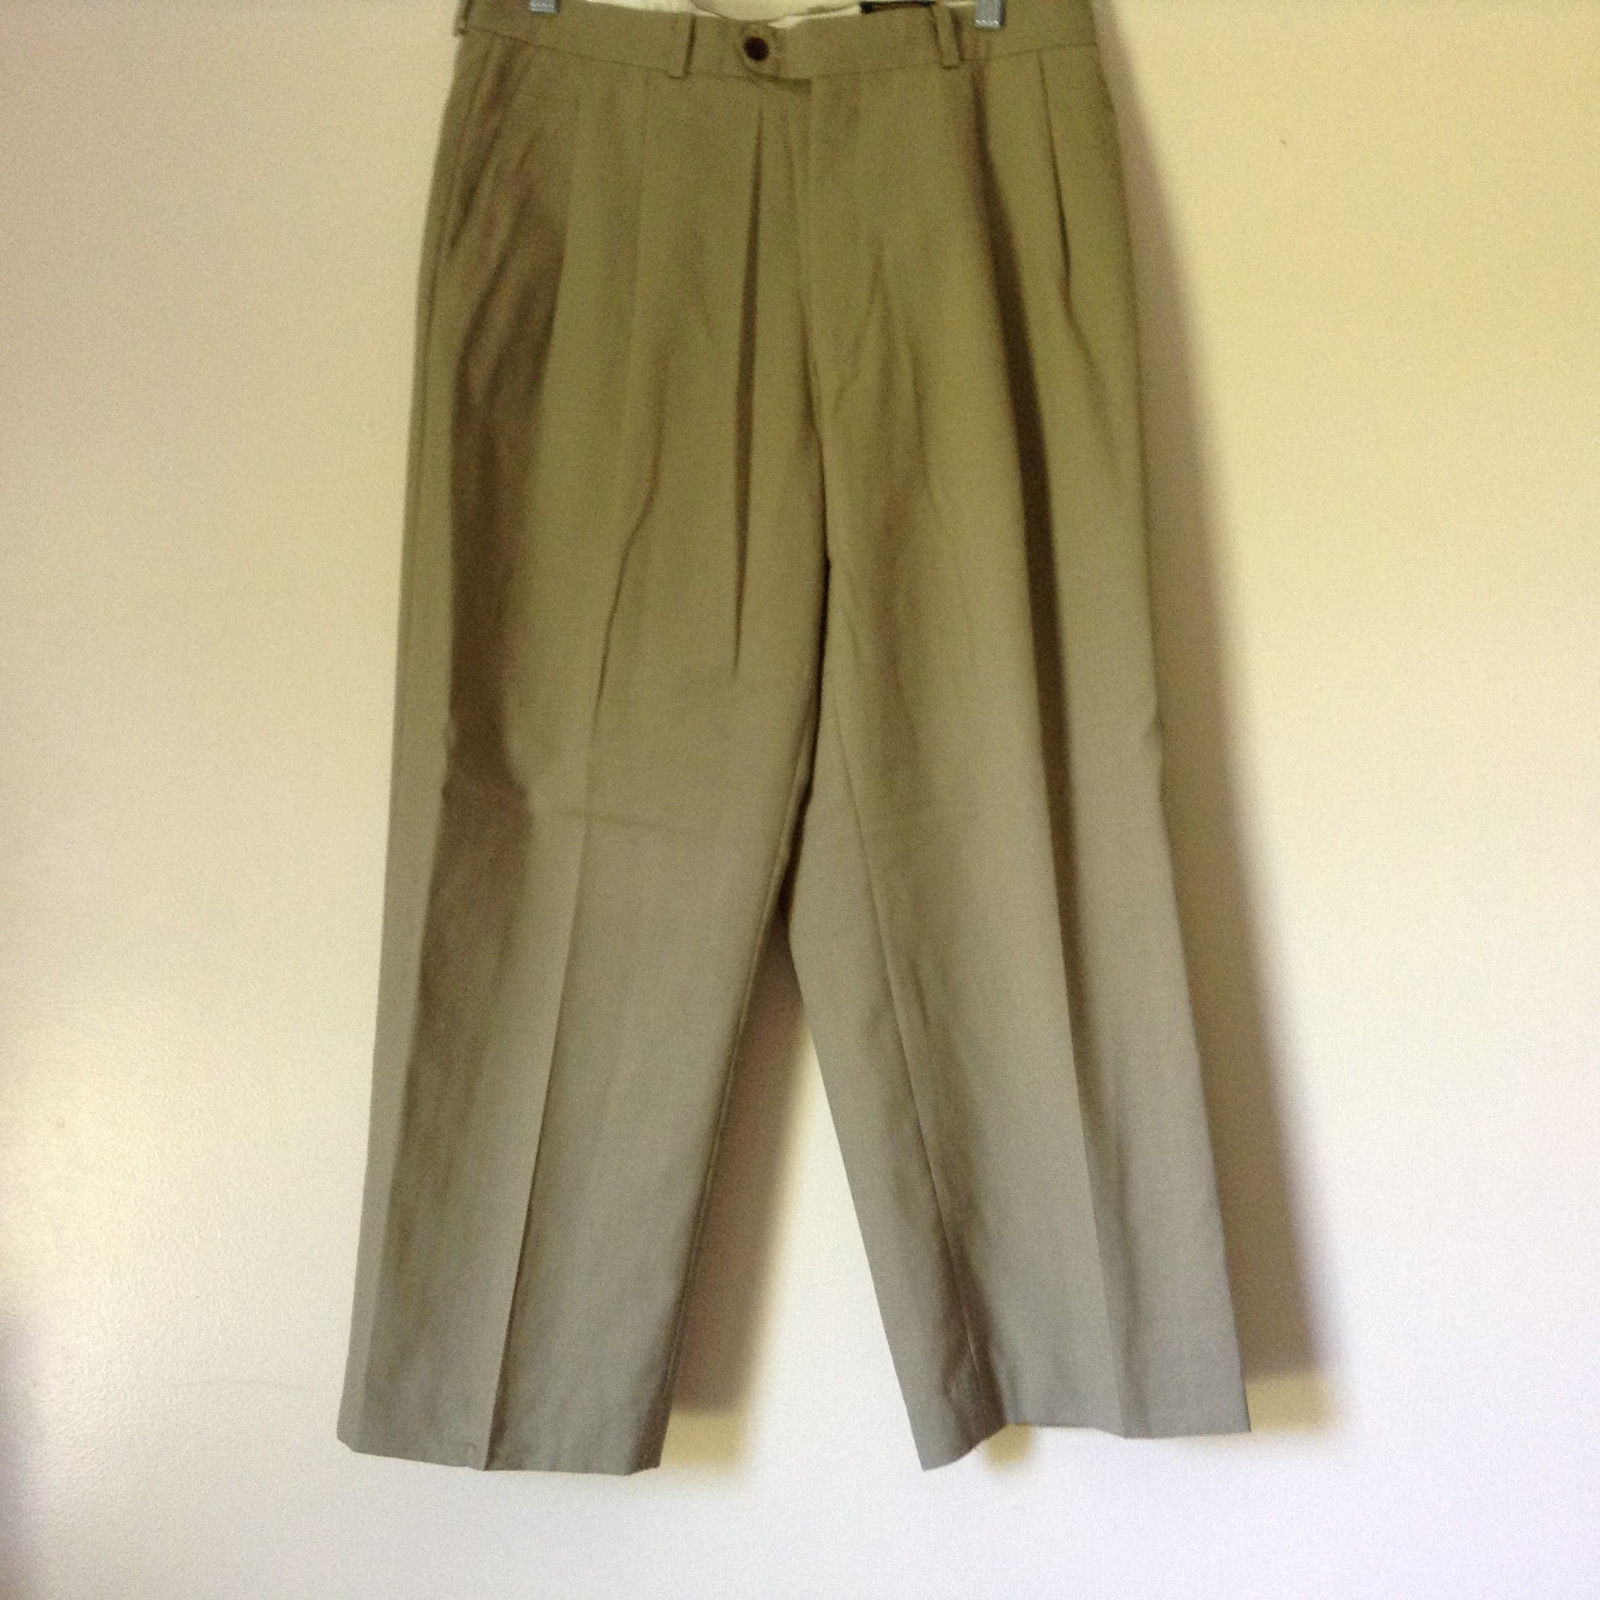 Light Brown Dress Pants by Chaps Ralph Lauren 100 Percent Wool Size 34